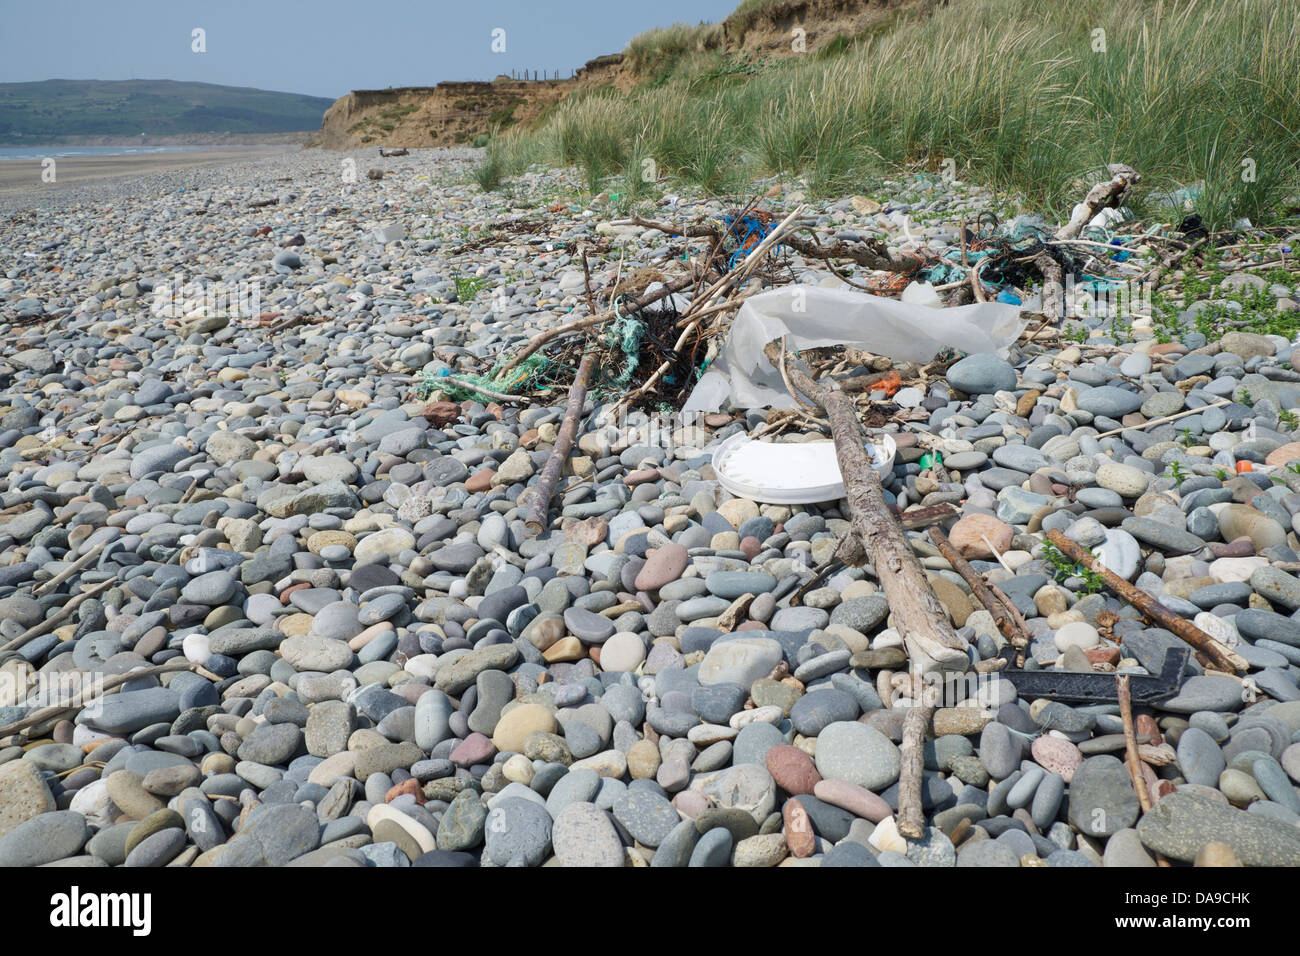 Debris brought in the tide - Stock Image